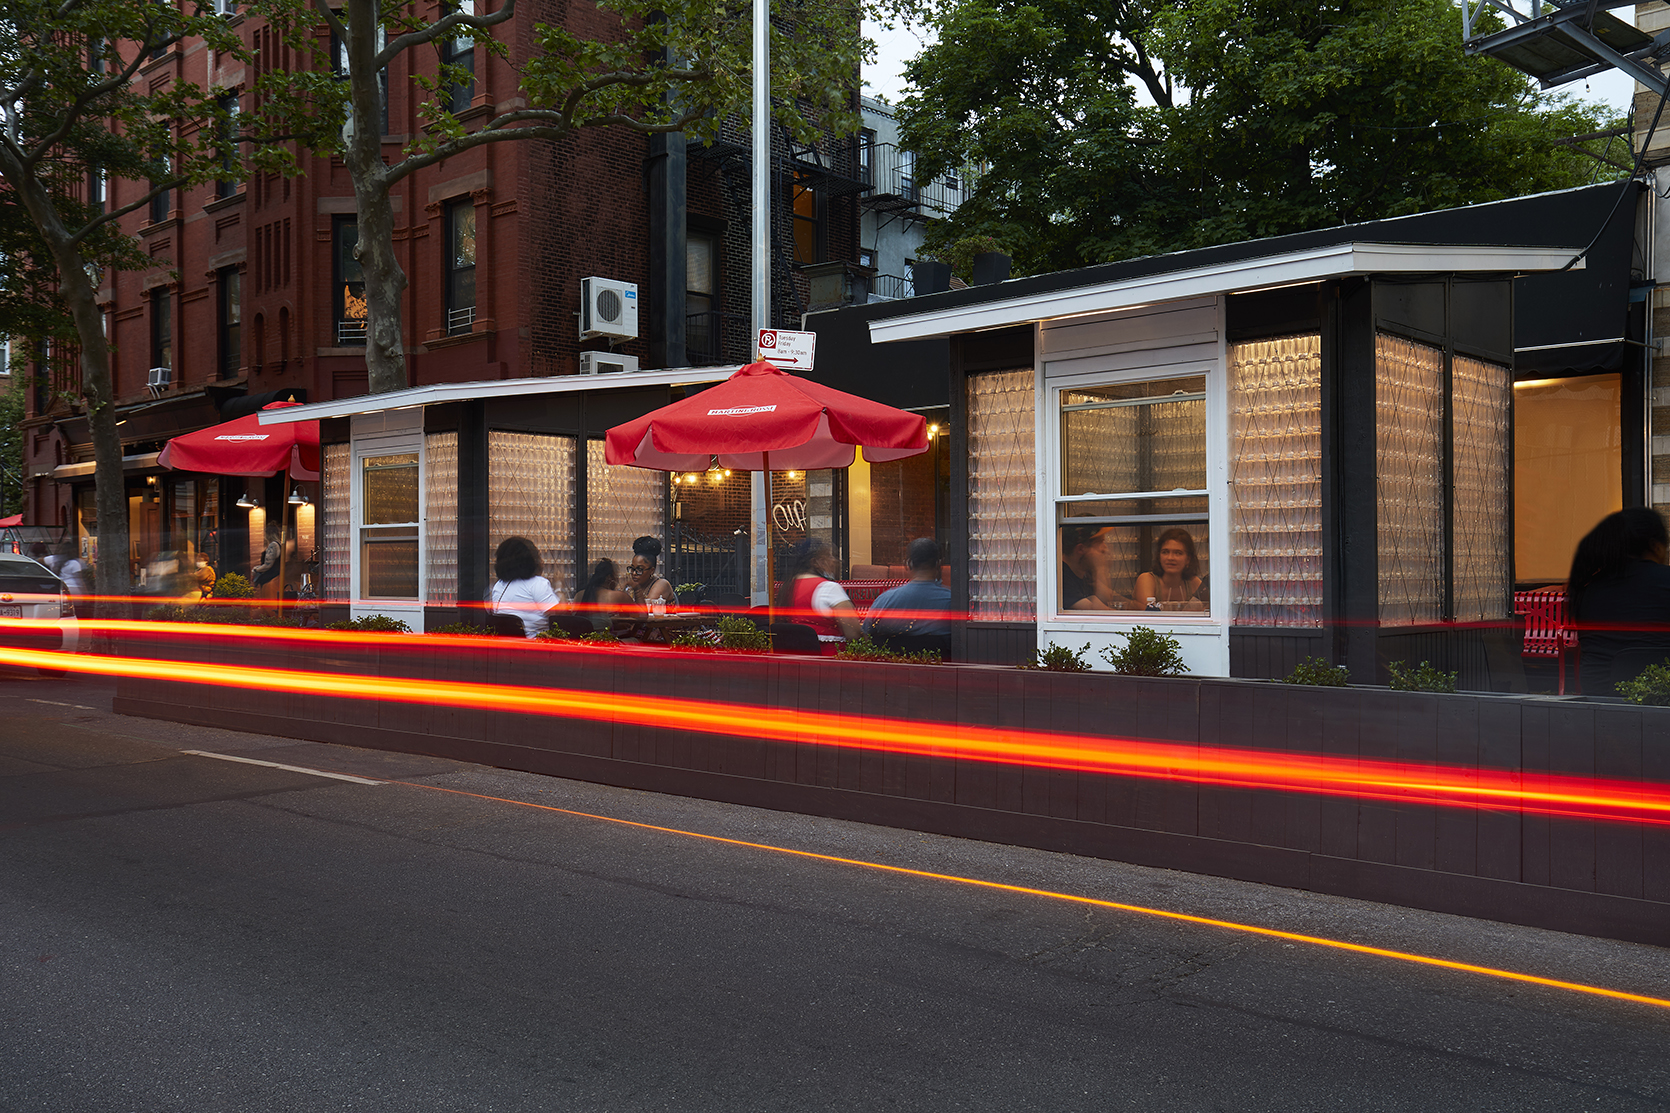 the outdoor dining structure at Peaches Kitchen and Bar